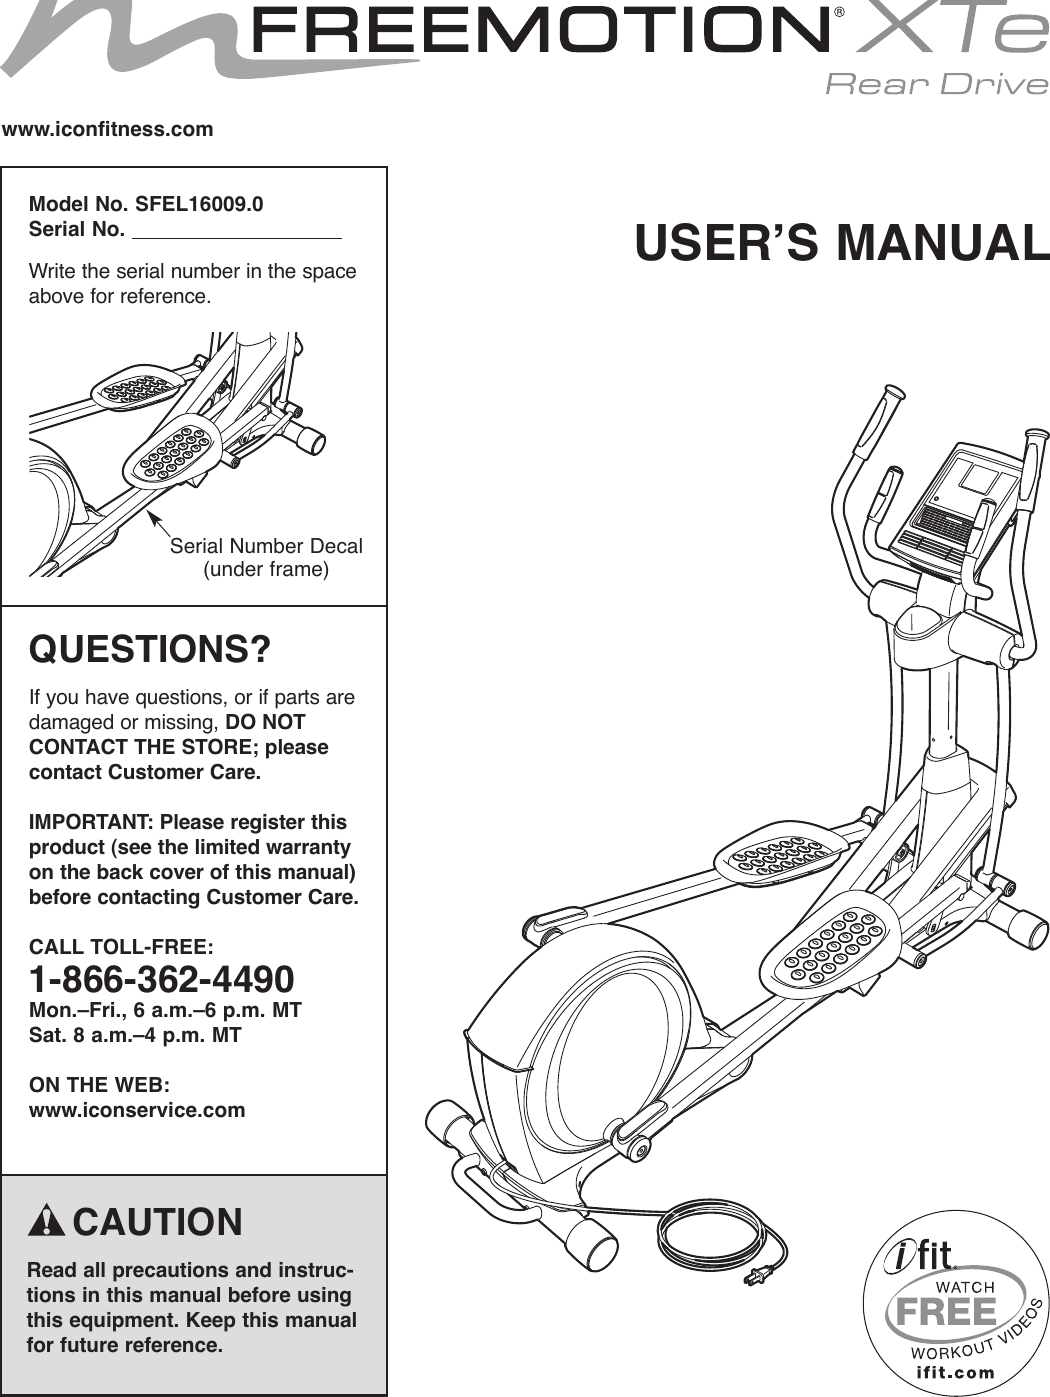 Freemotion Sfel160090 Owners Manual 285430